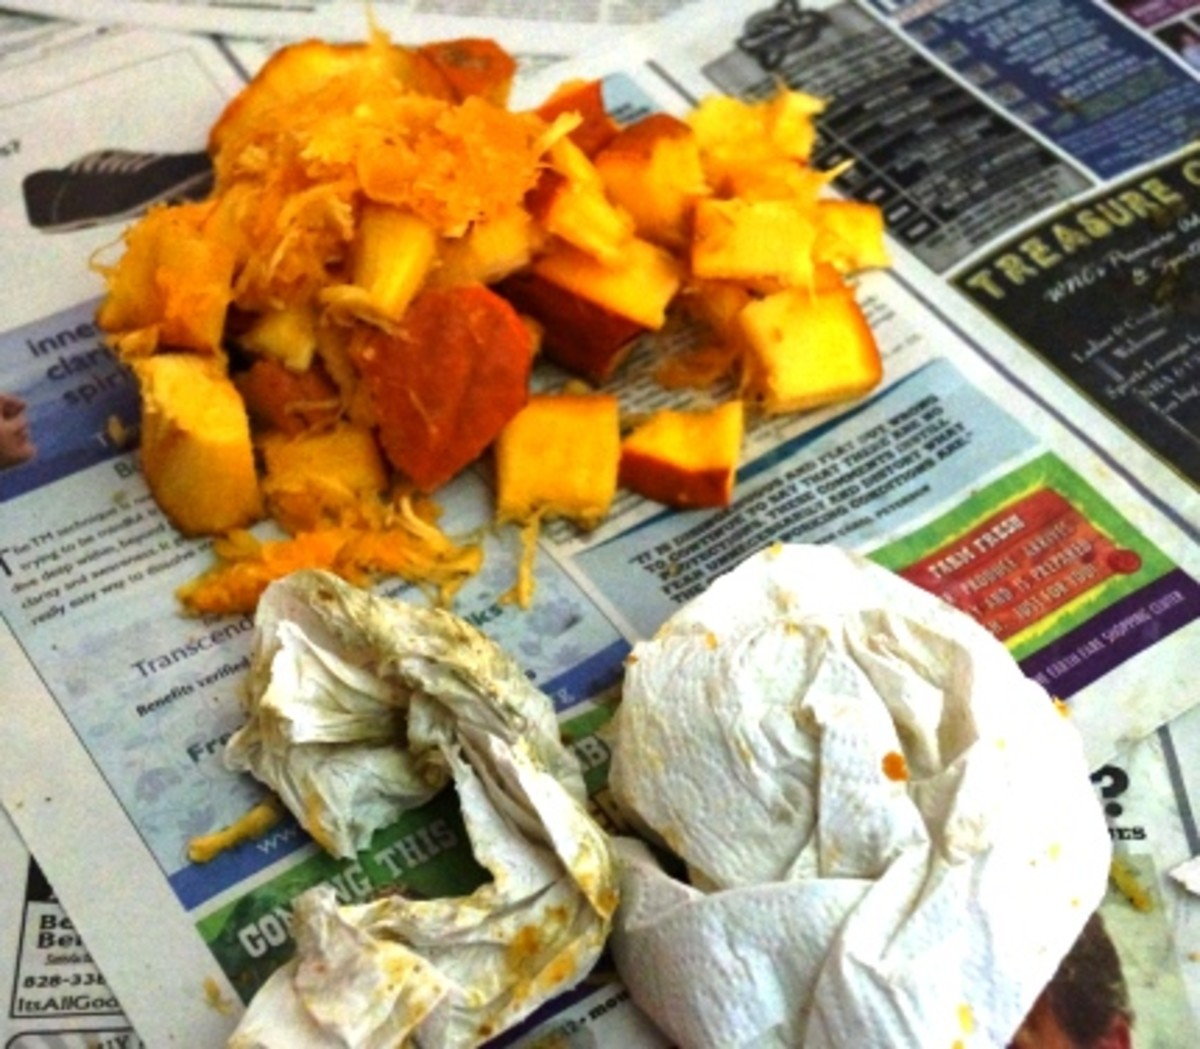 Chunks of pumpkin cut-out, paper towels and newspaper are all destined for the compost pile.